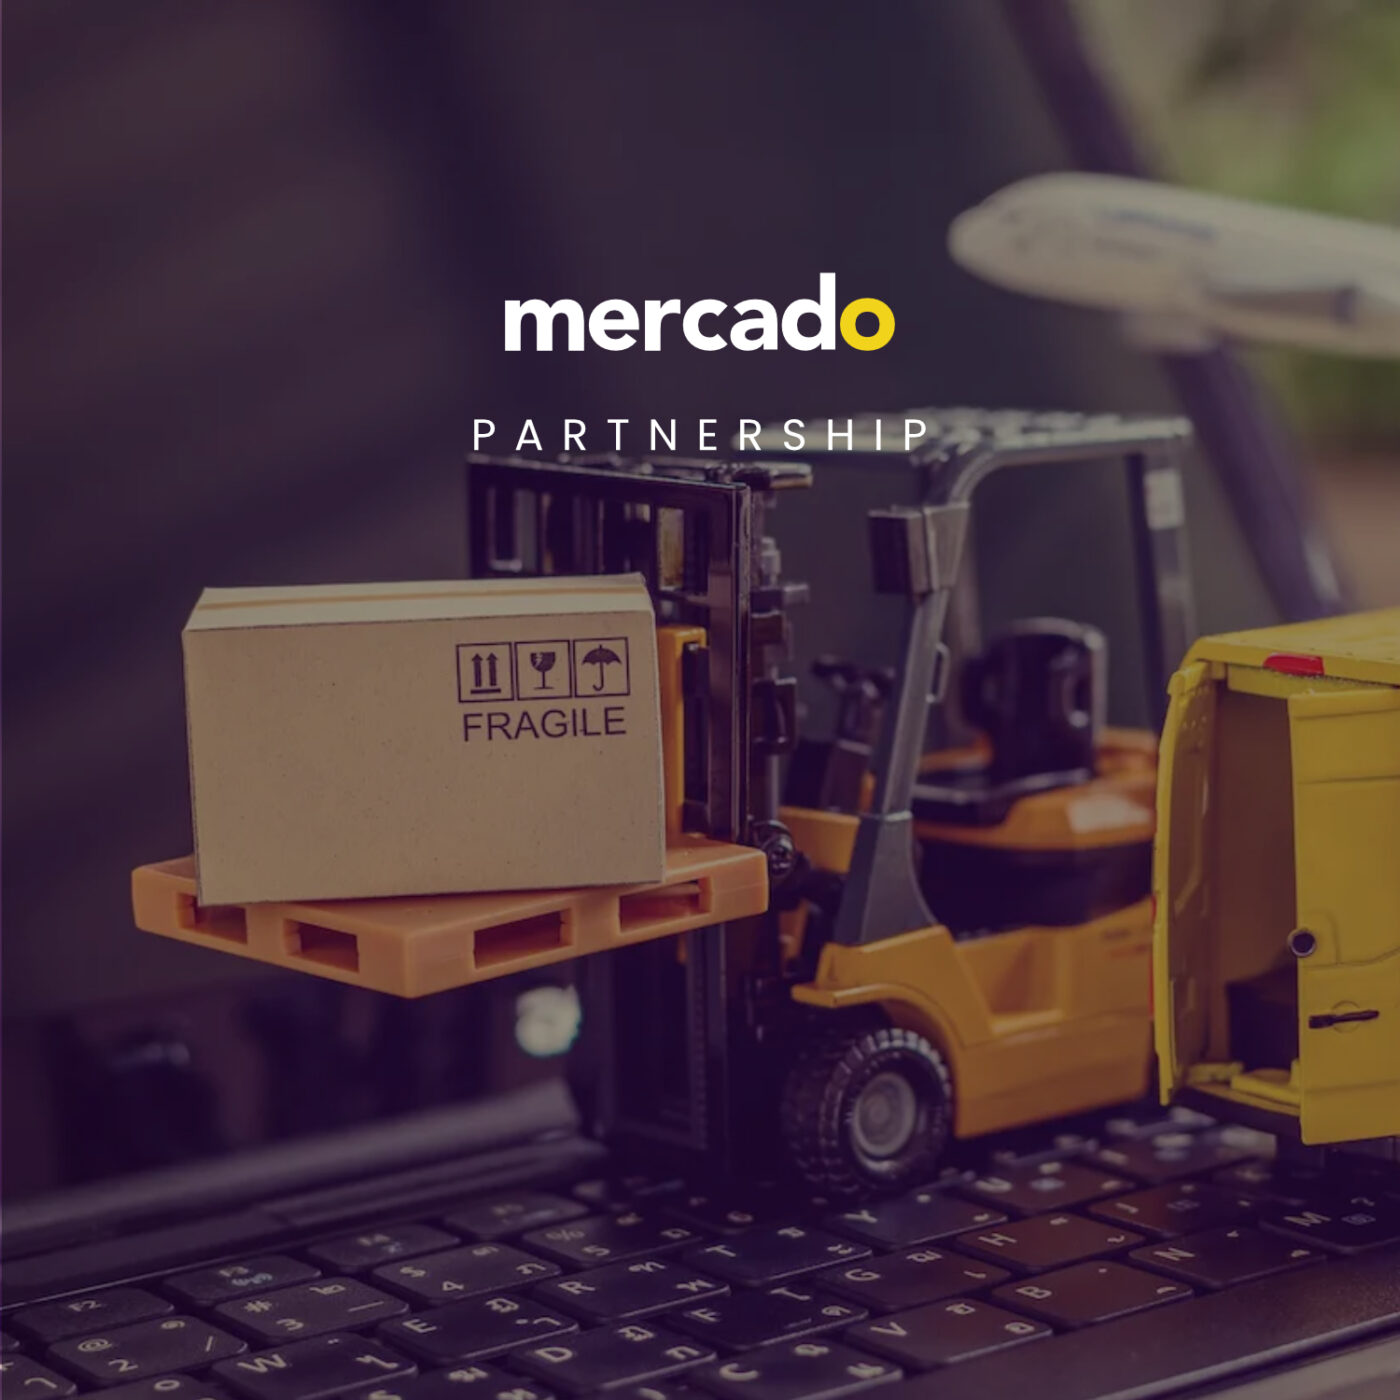 Mercado | Mercado x Sourcing - The First Mile is the New Final Mile